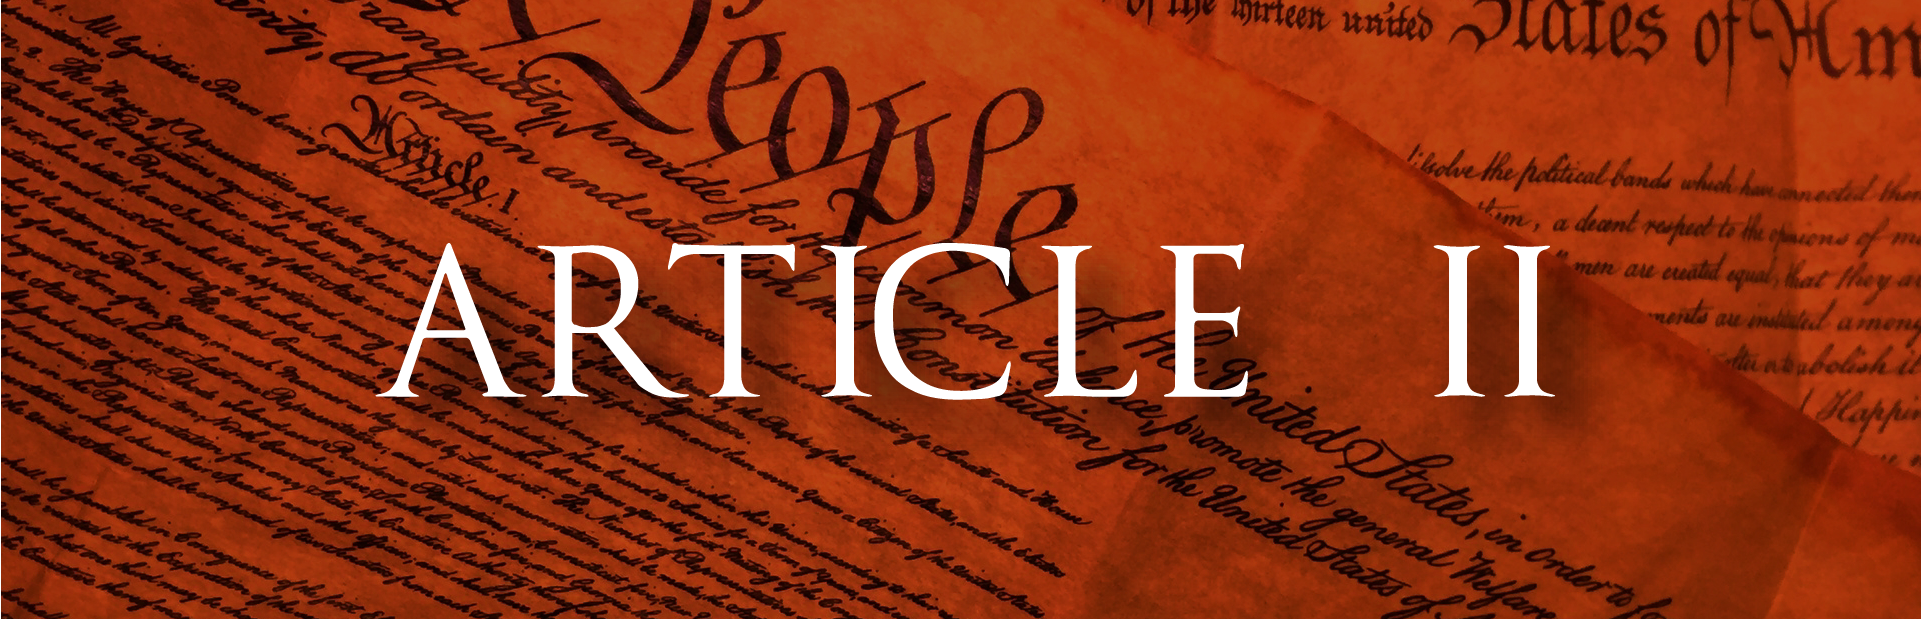 The Constitution - Article II, section 1, clause 1 » SLG ...